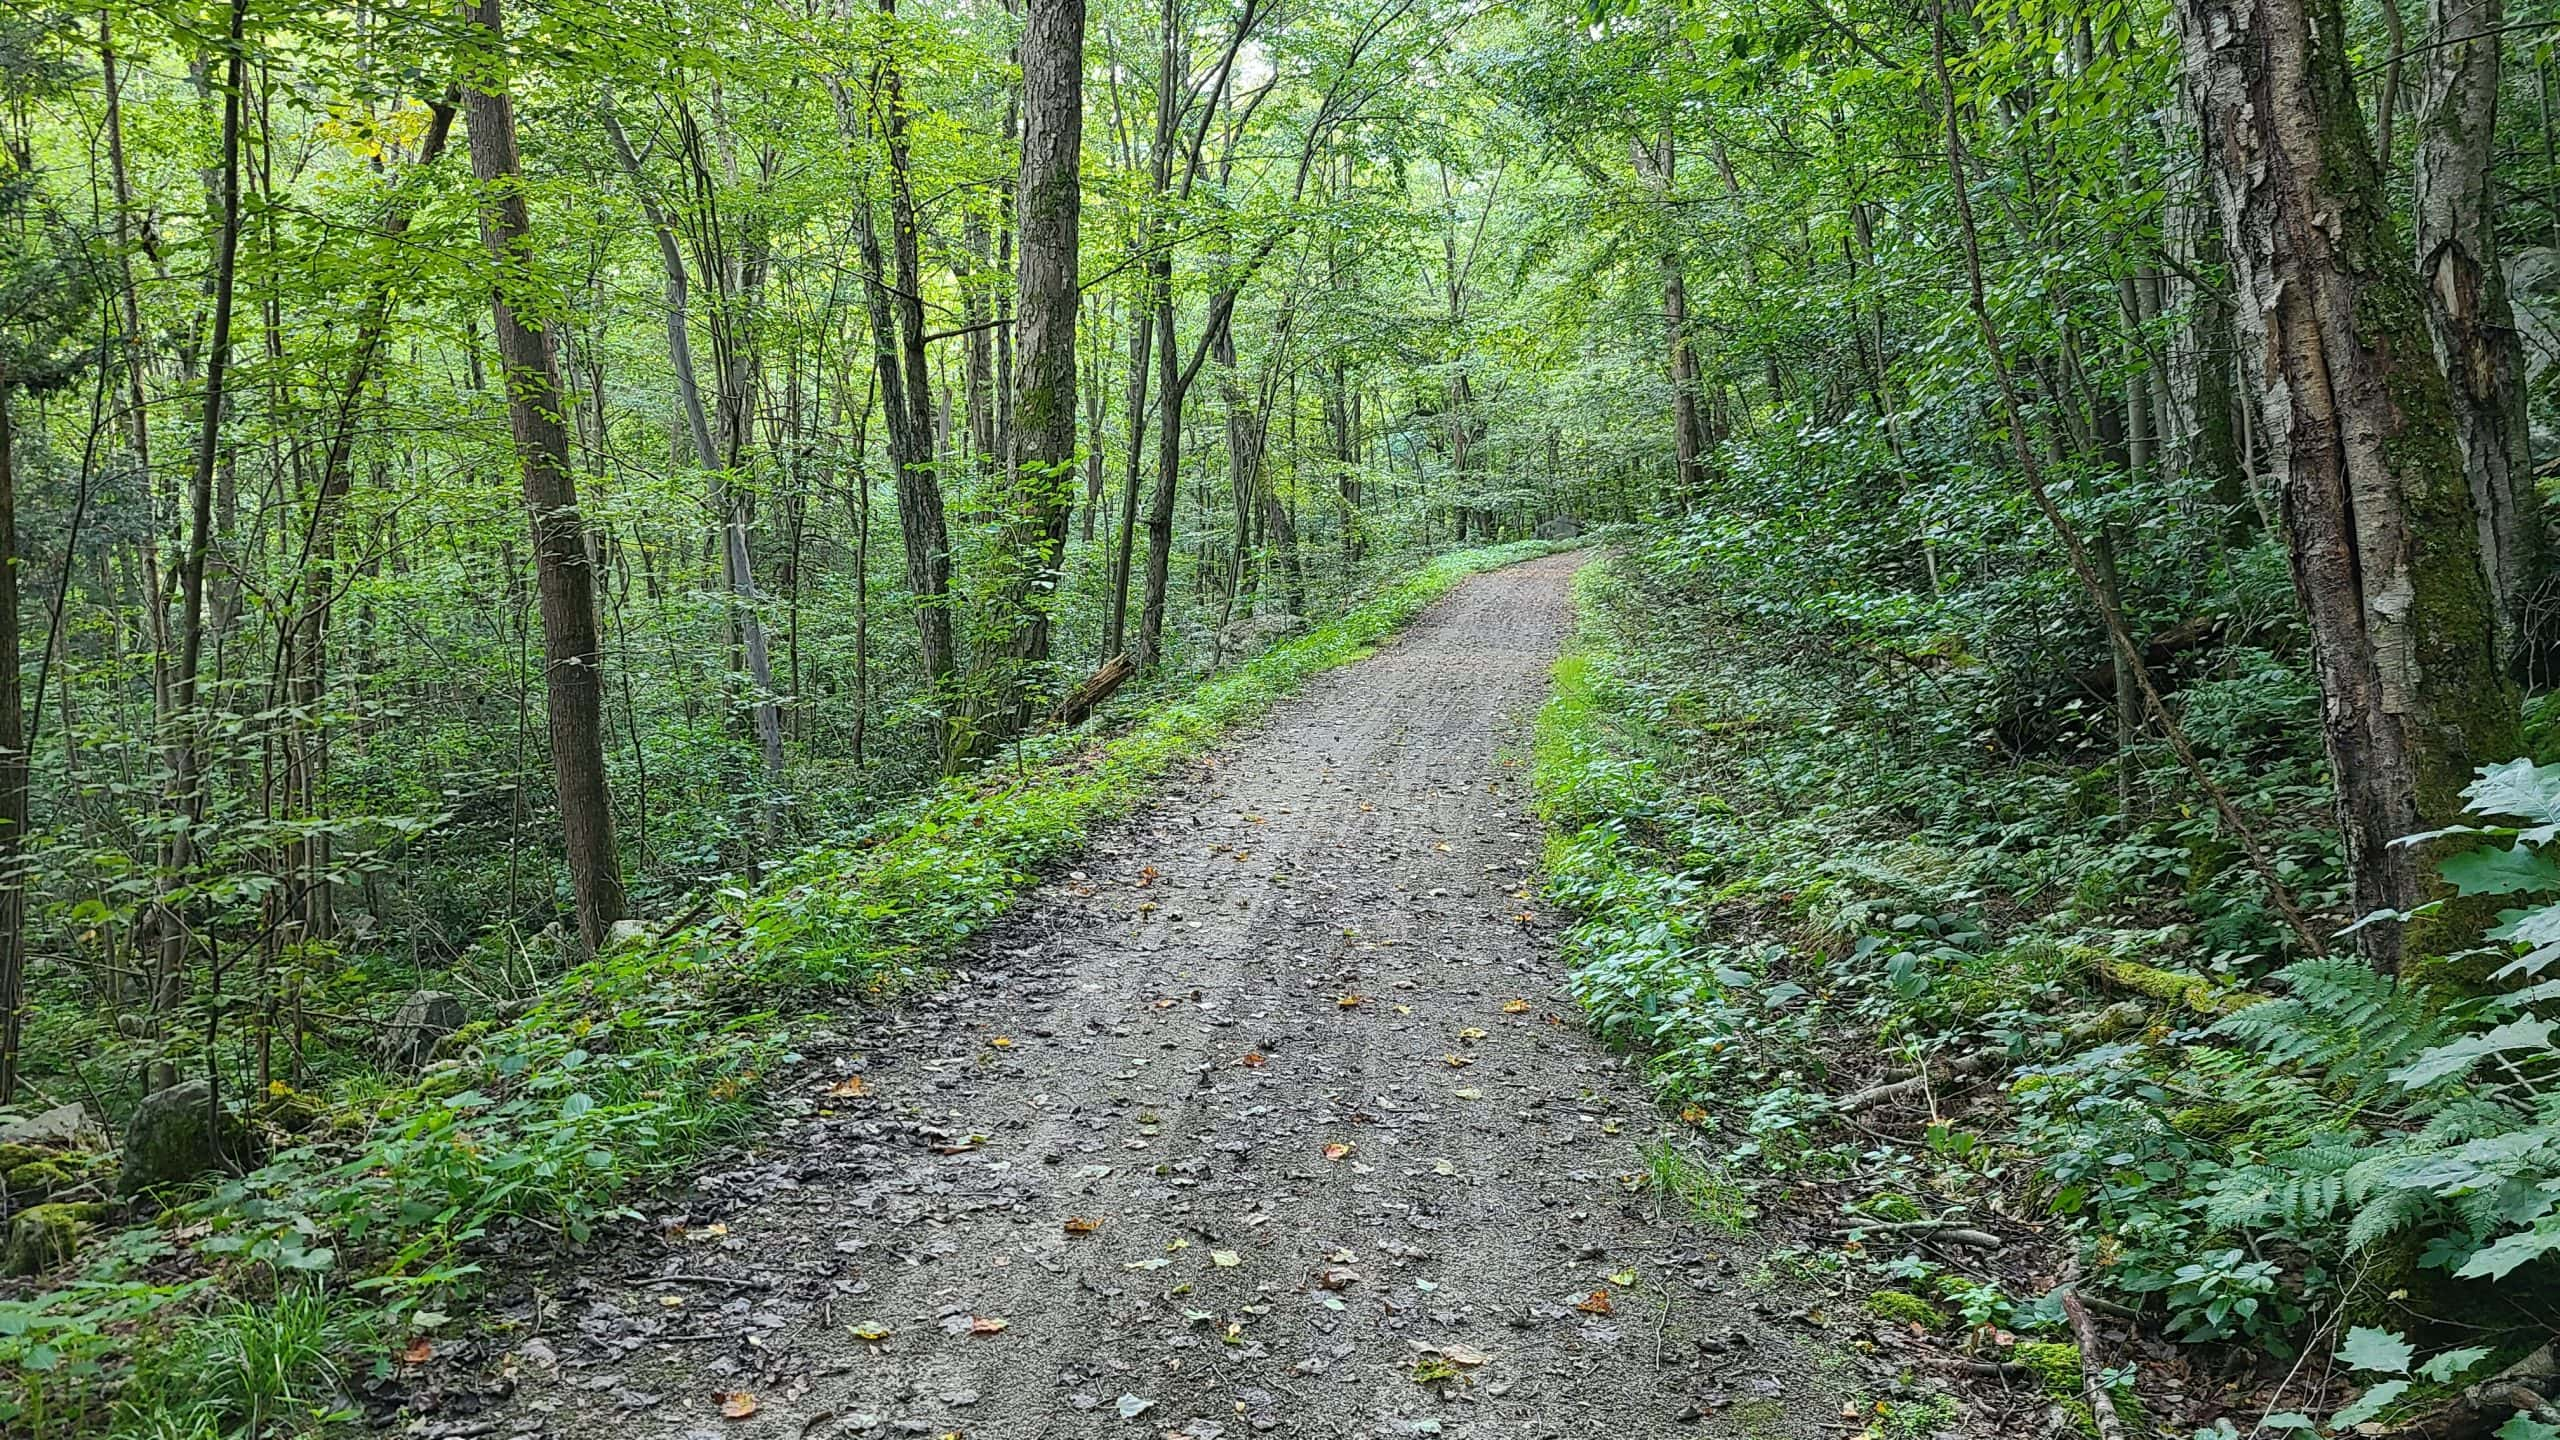 A narrower dirt trail winds through thick forest.